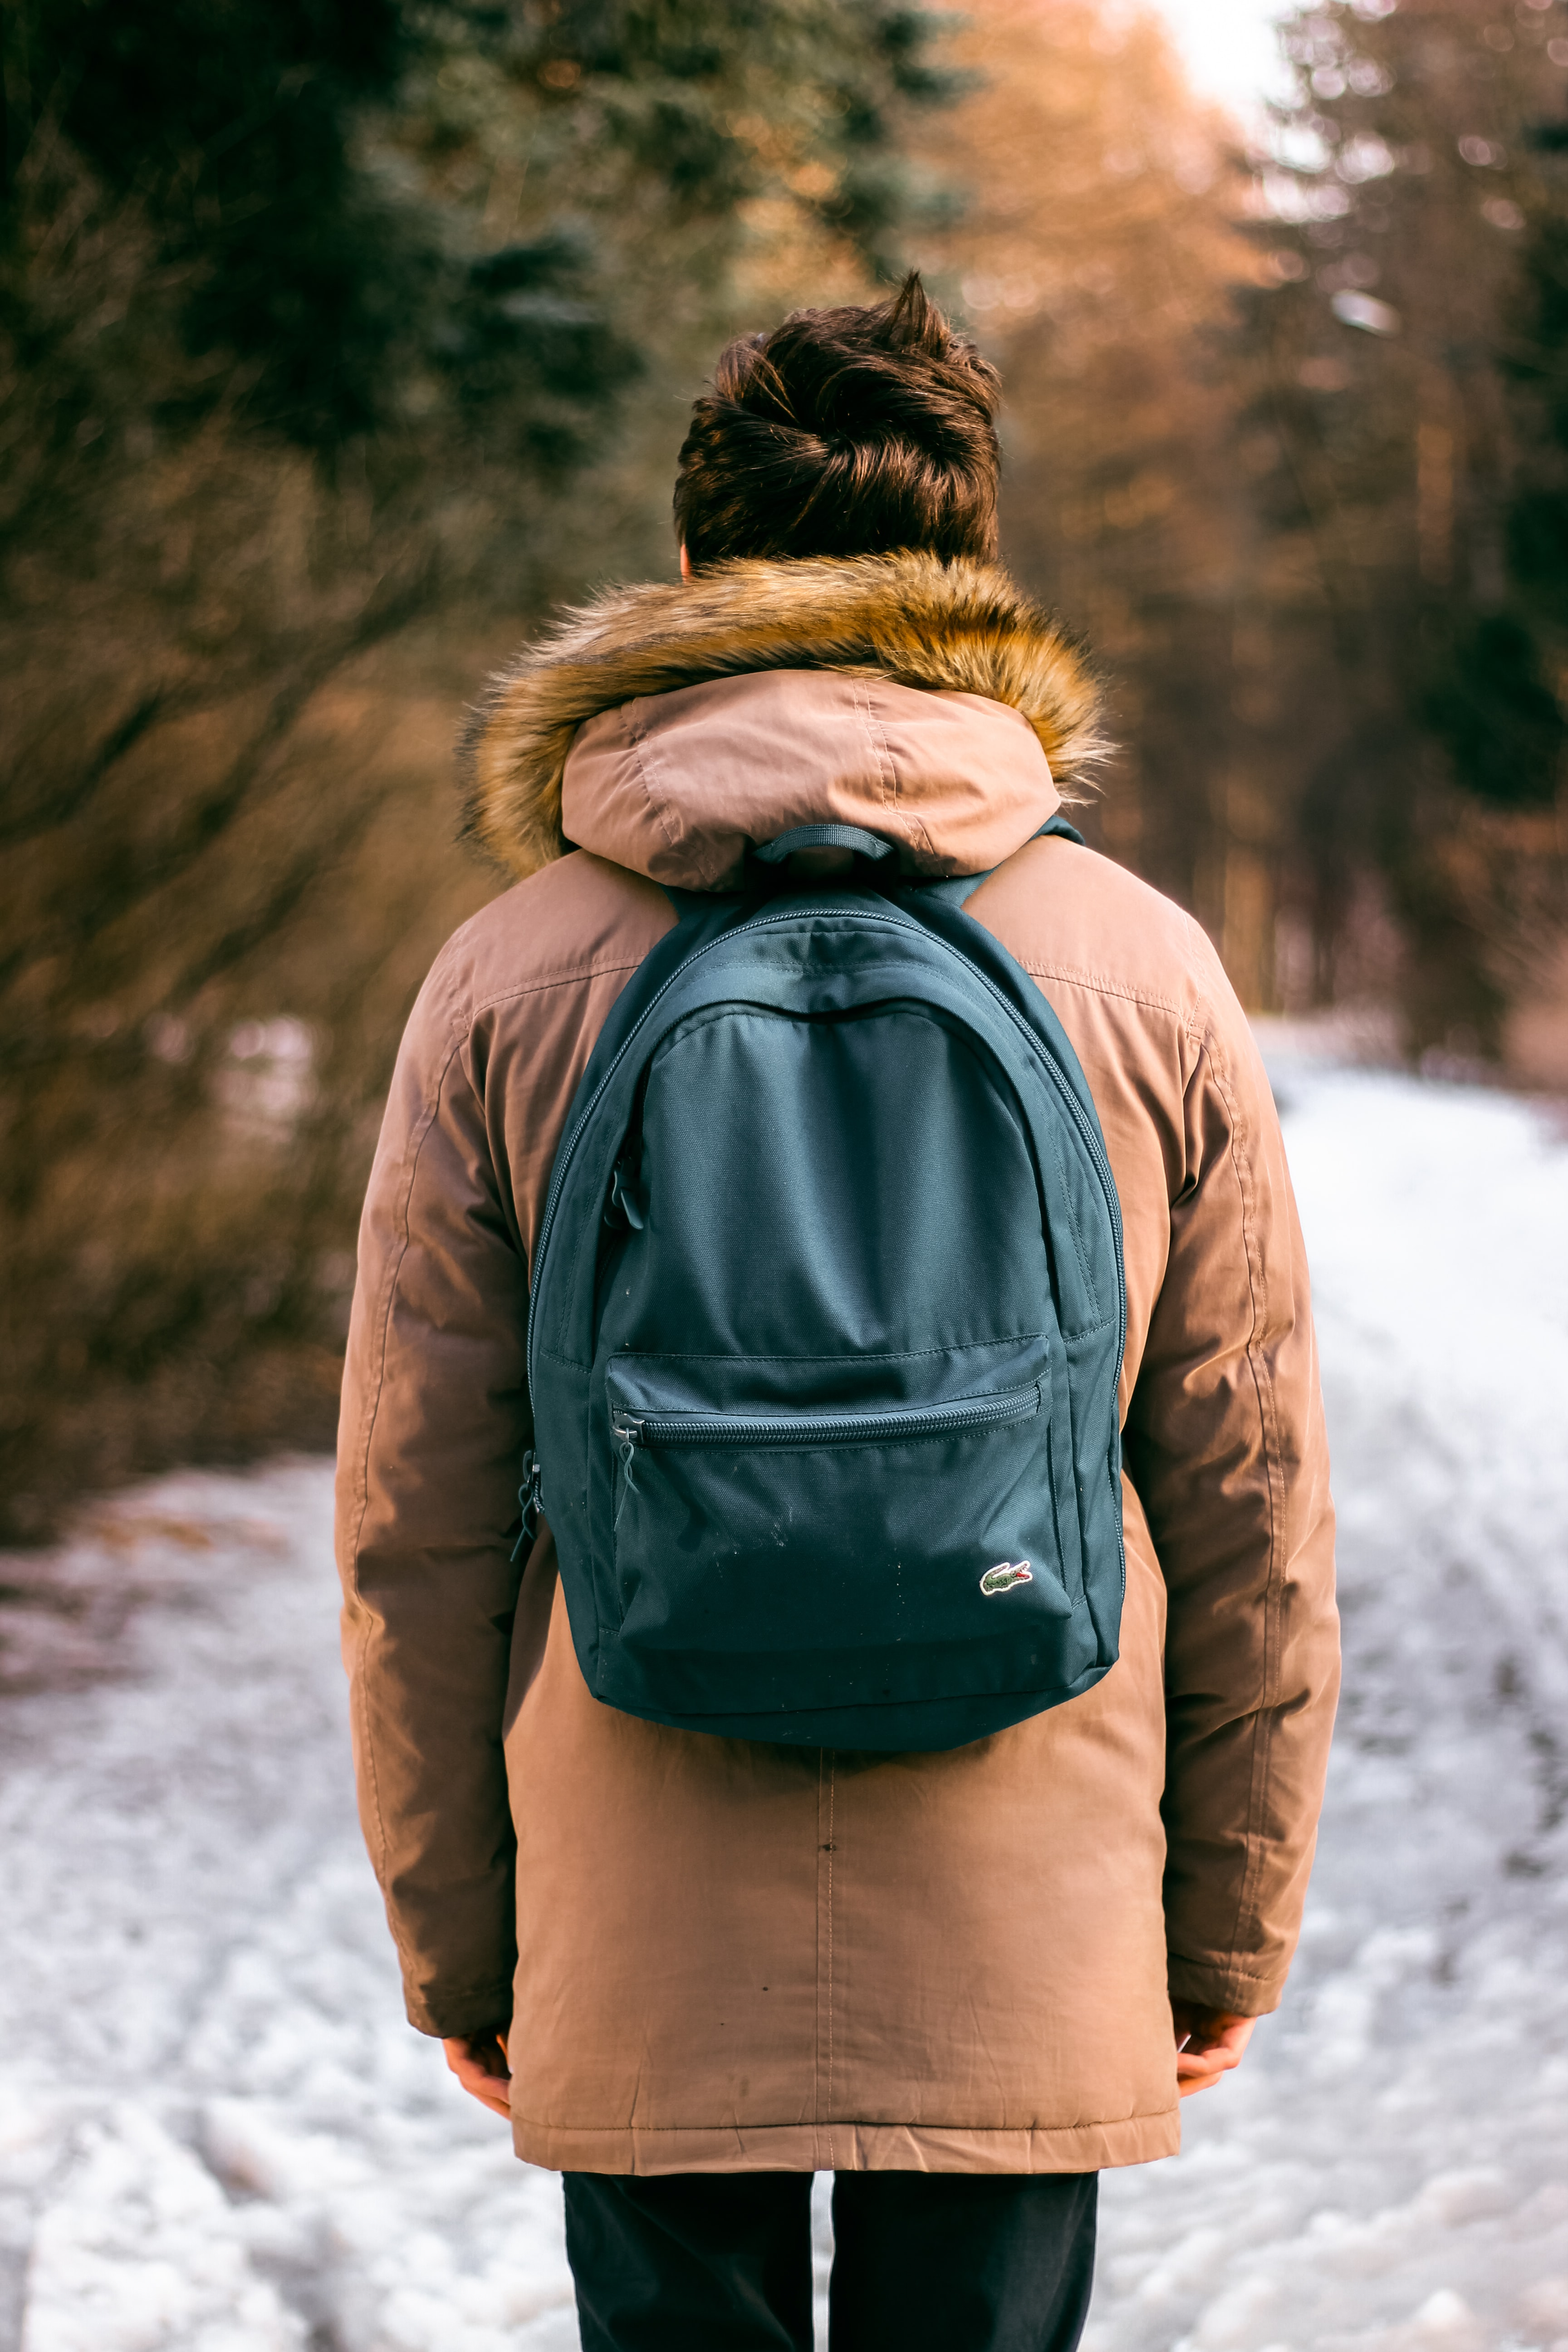 A shot from behind a man wearing Lacoste and carrying a backpack down a trail